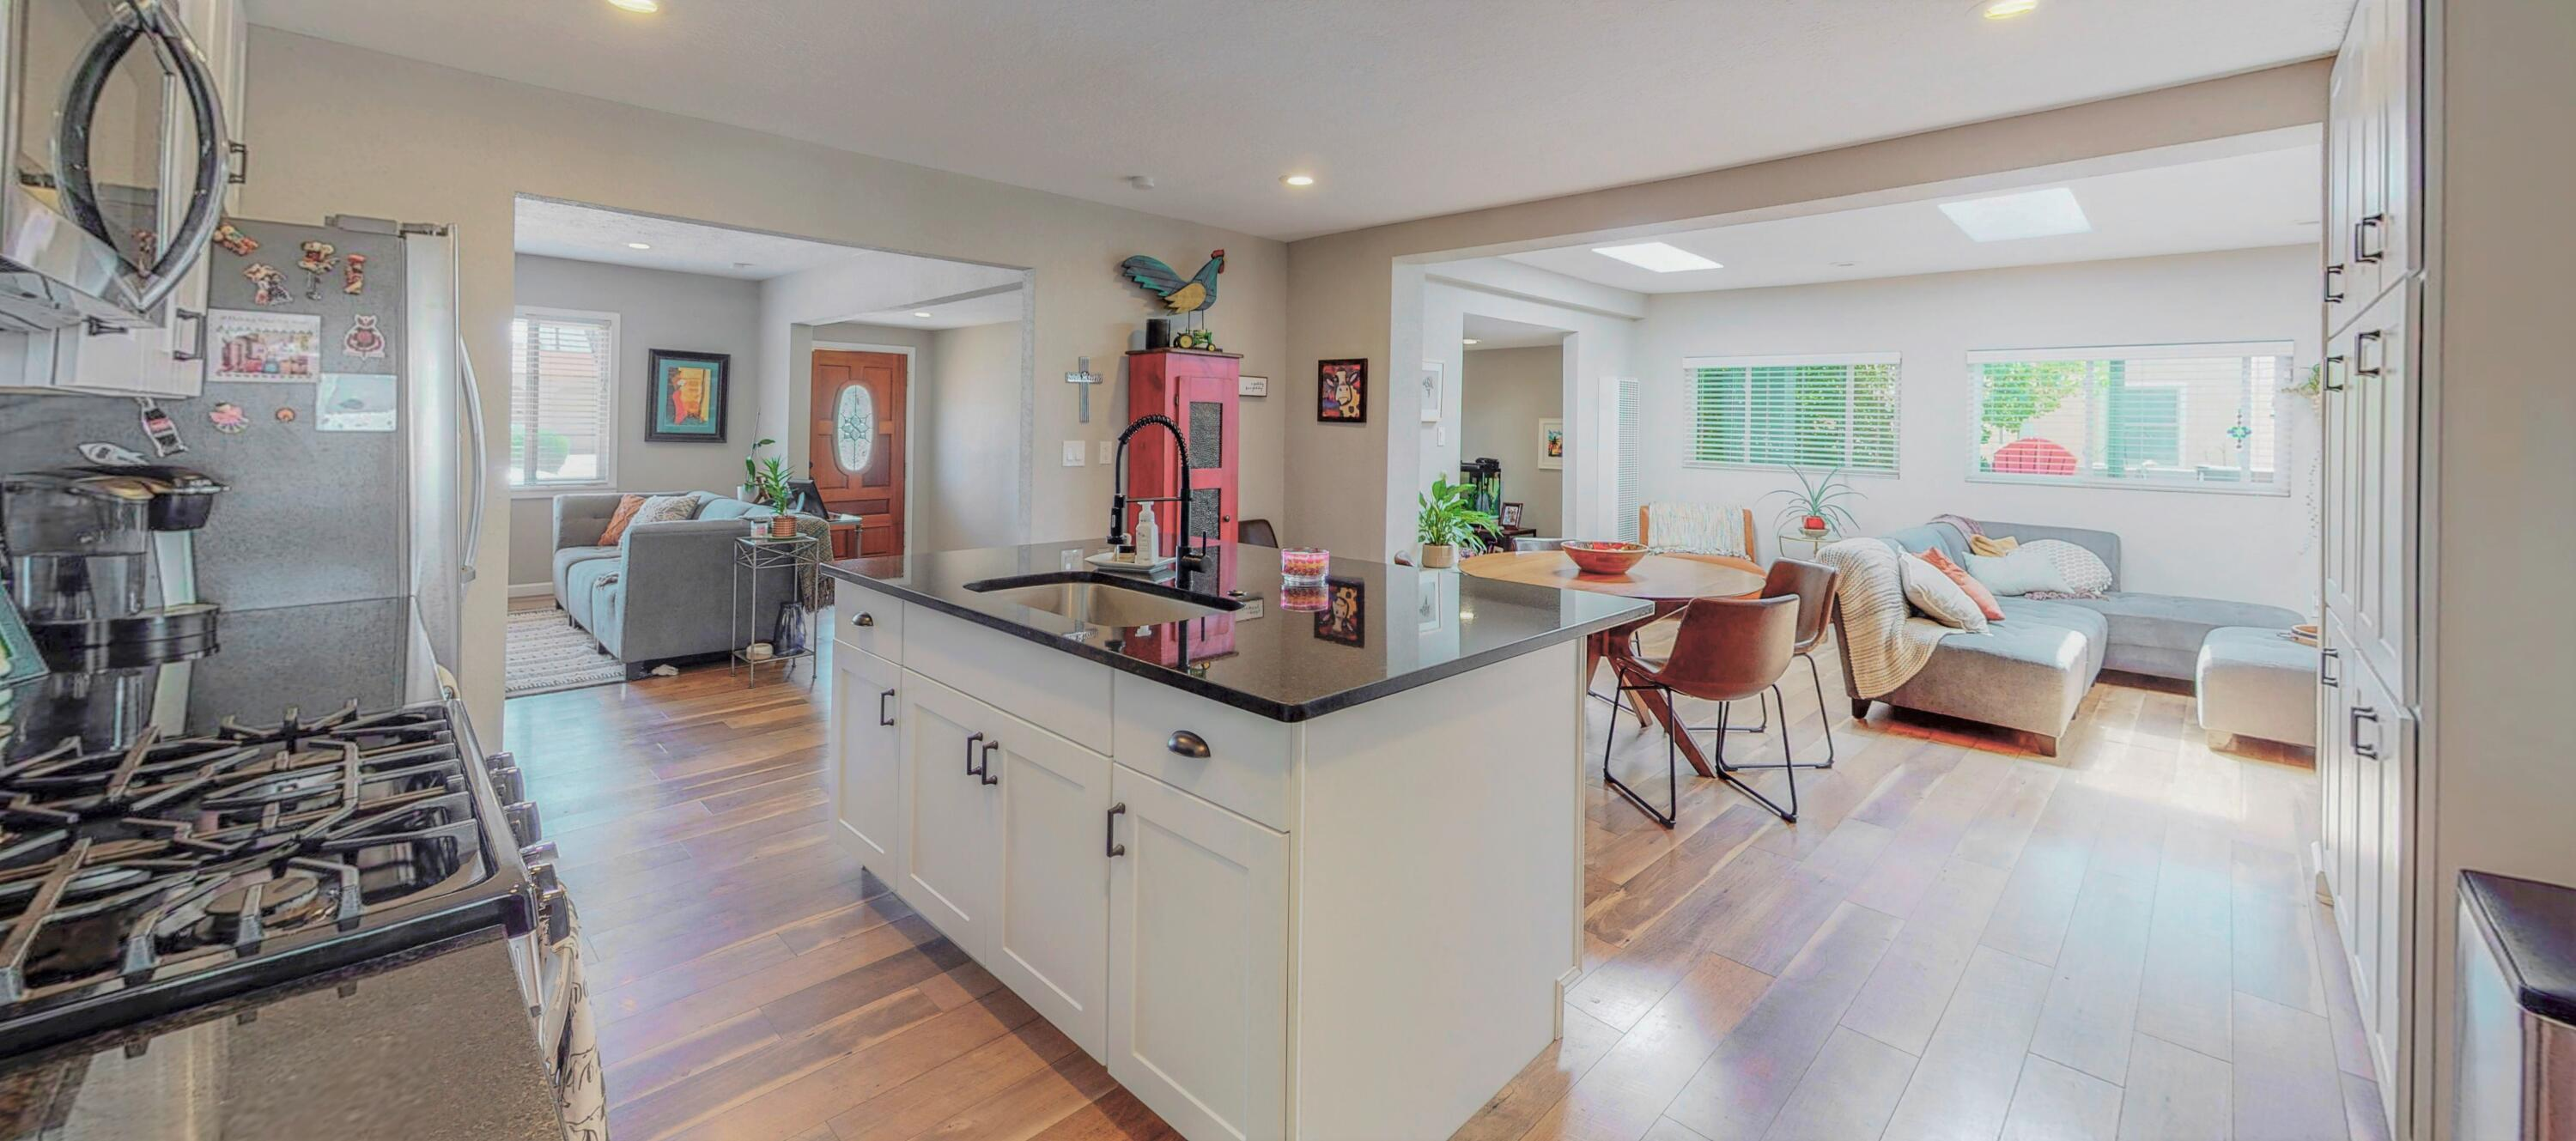 BEAUTIFUL open concept home in UNM/Ridgecrest area. Large modern kitchen with oversized center island and custom granite, plus high-end stainless appliances. Two spacious living areas including a great room with skylights for entertaining studying or relaxing. Spa-like custom bathrooms with floor to ceiling tile and modern cabinetry.  Includes 250 sq ft fully heated and cooled backyard gym/studio just across the large custom built deck. Master BR has it's own wood burning fireplace plus Enormous one-of-a-kind ''walk around closet'' (with two entrances). Gorgeously landscaped, the lush and shady backyard oasis has a huge shade tree as well as an established producing cherry tree. Bandolier school district! Easy freeway access and close to labs, Facebook, Mesa Del Sol & TWO universities.